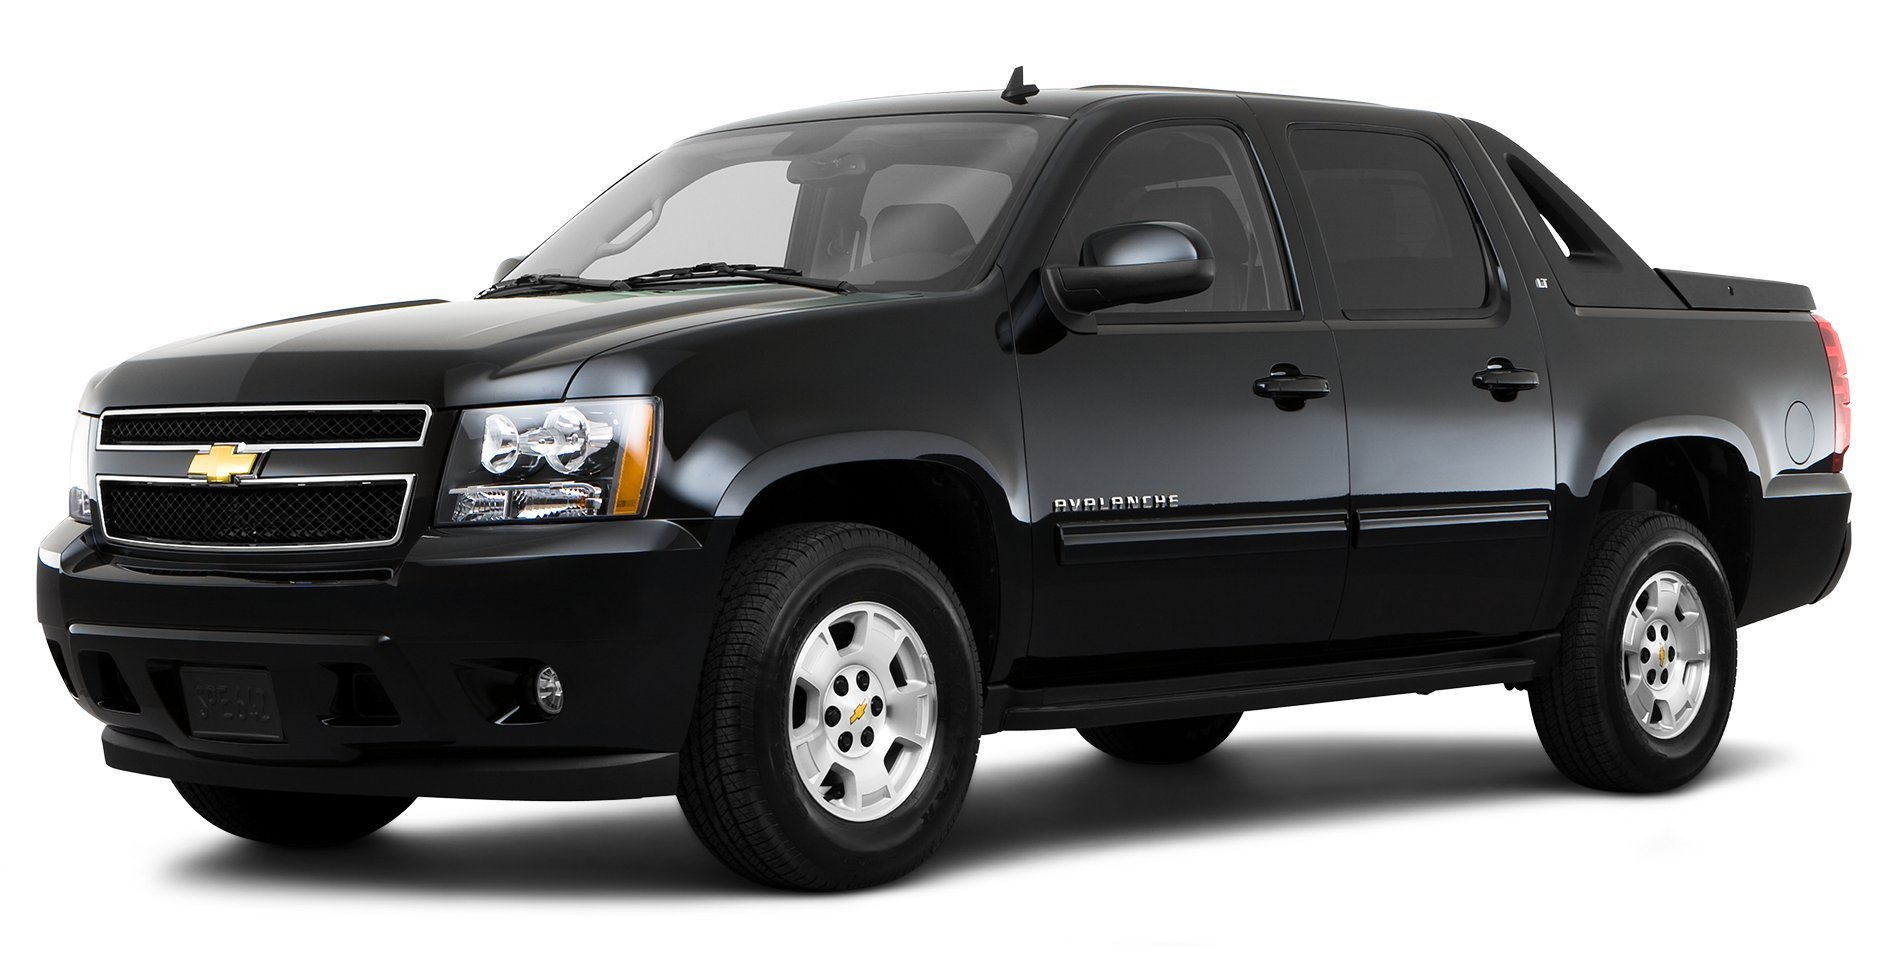 Amazon.com: 2010 Chevrolet Avalanche Reviews, Images, and Specs ...